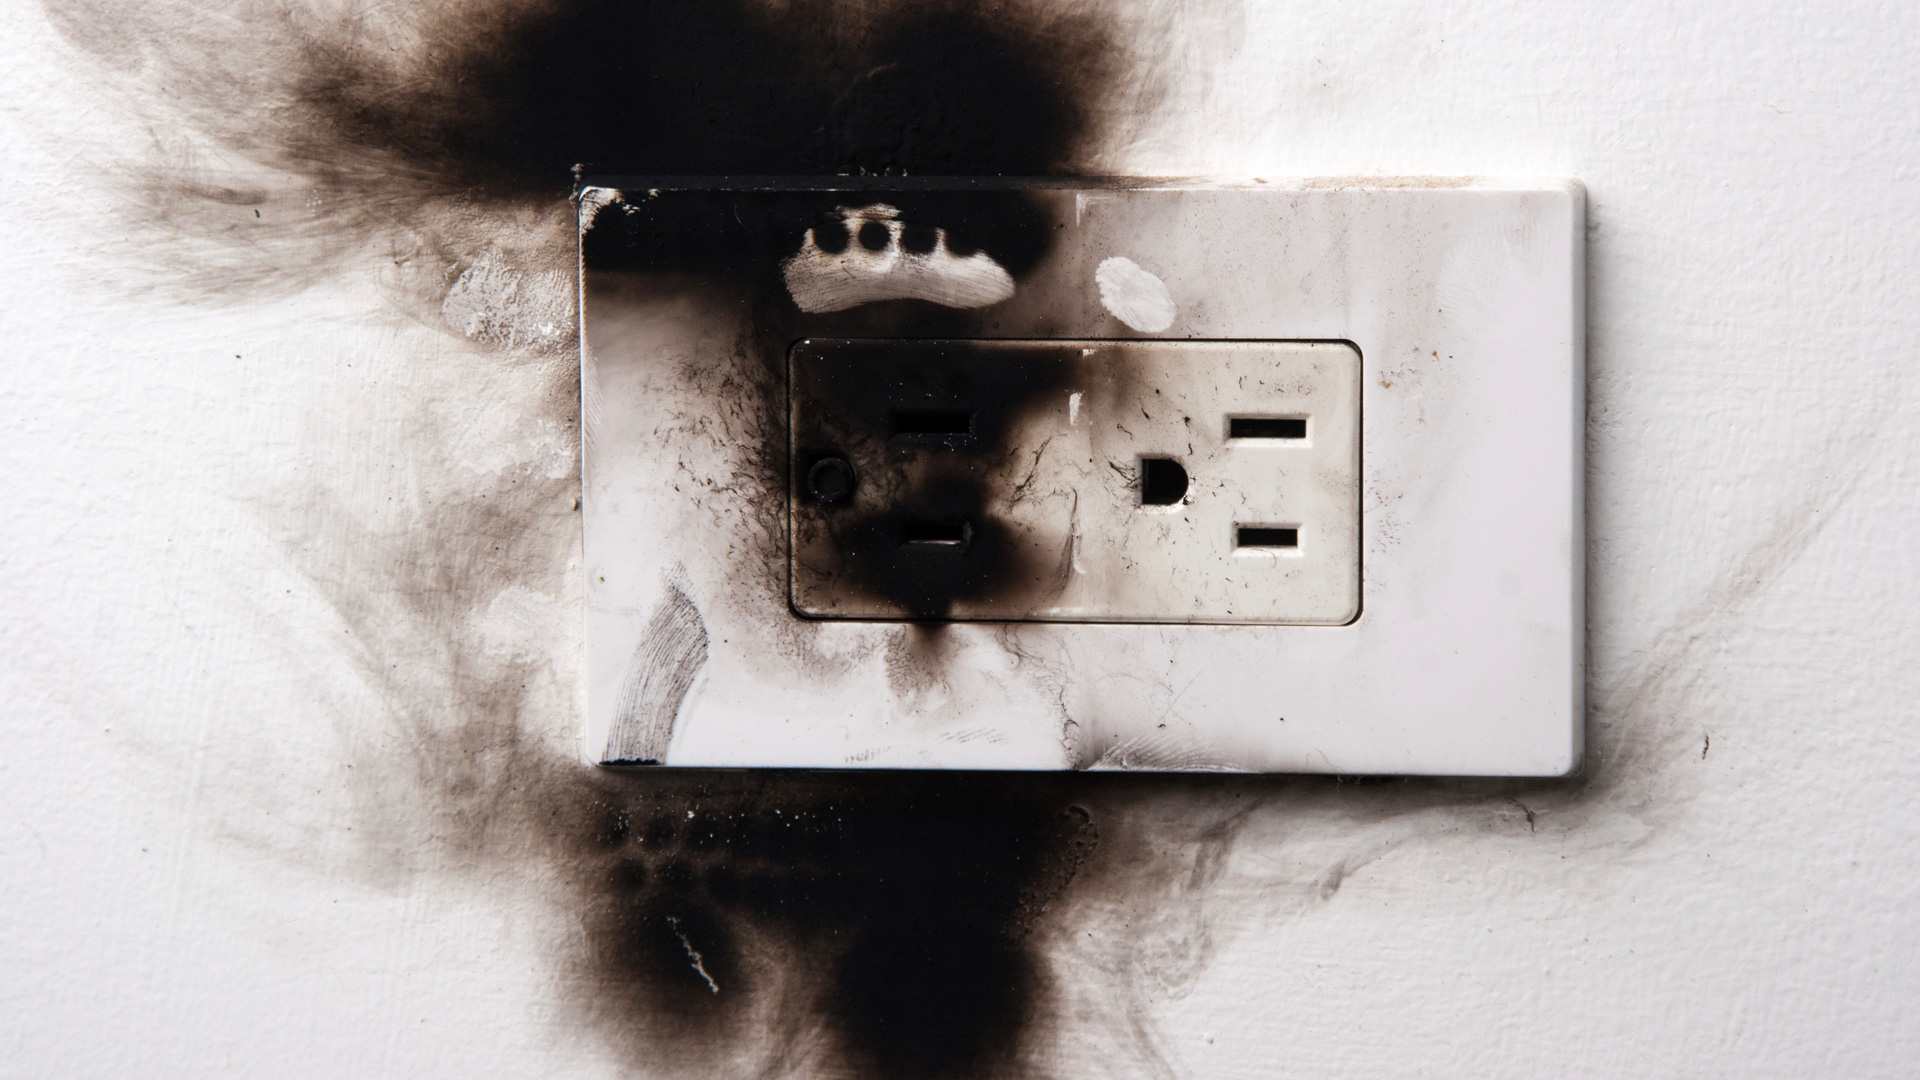 Outlet fire